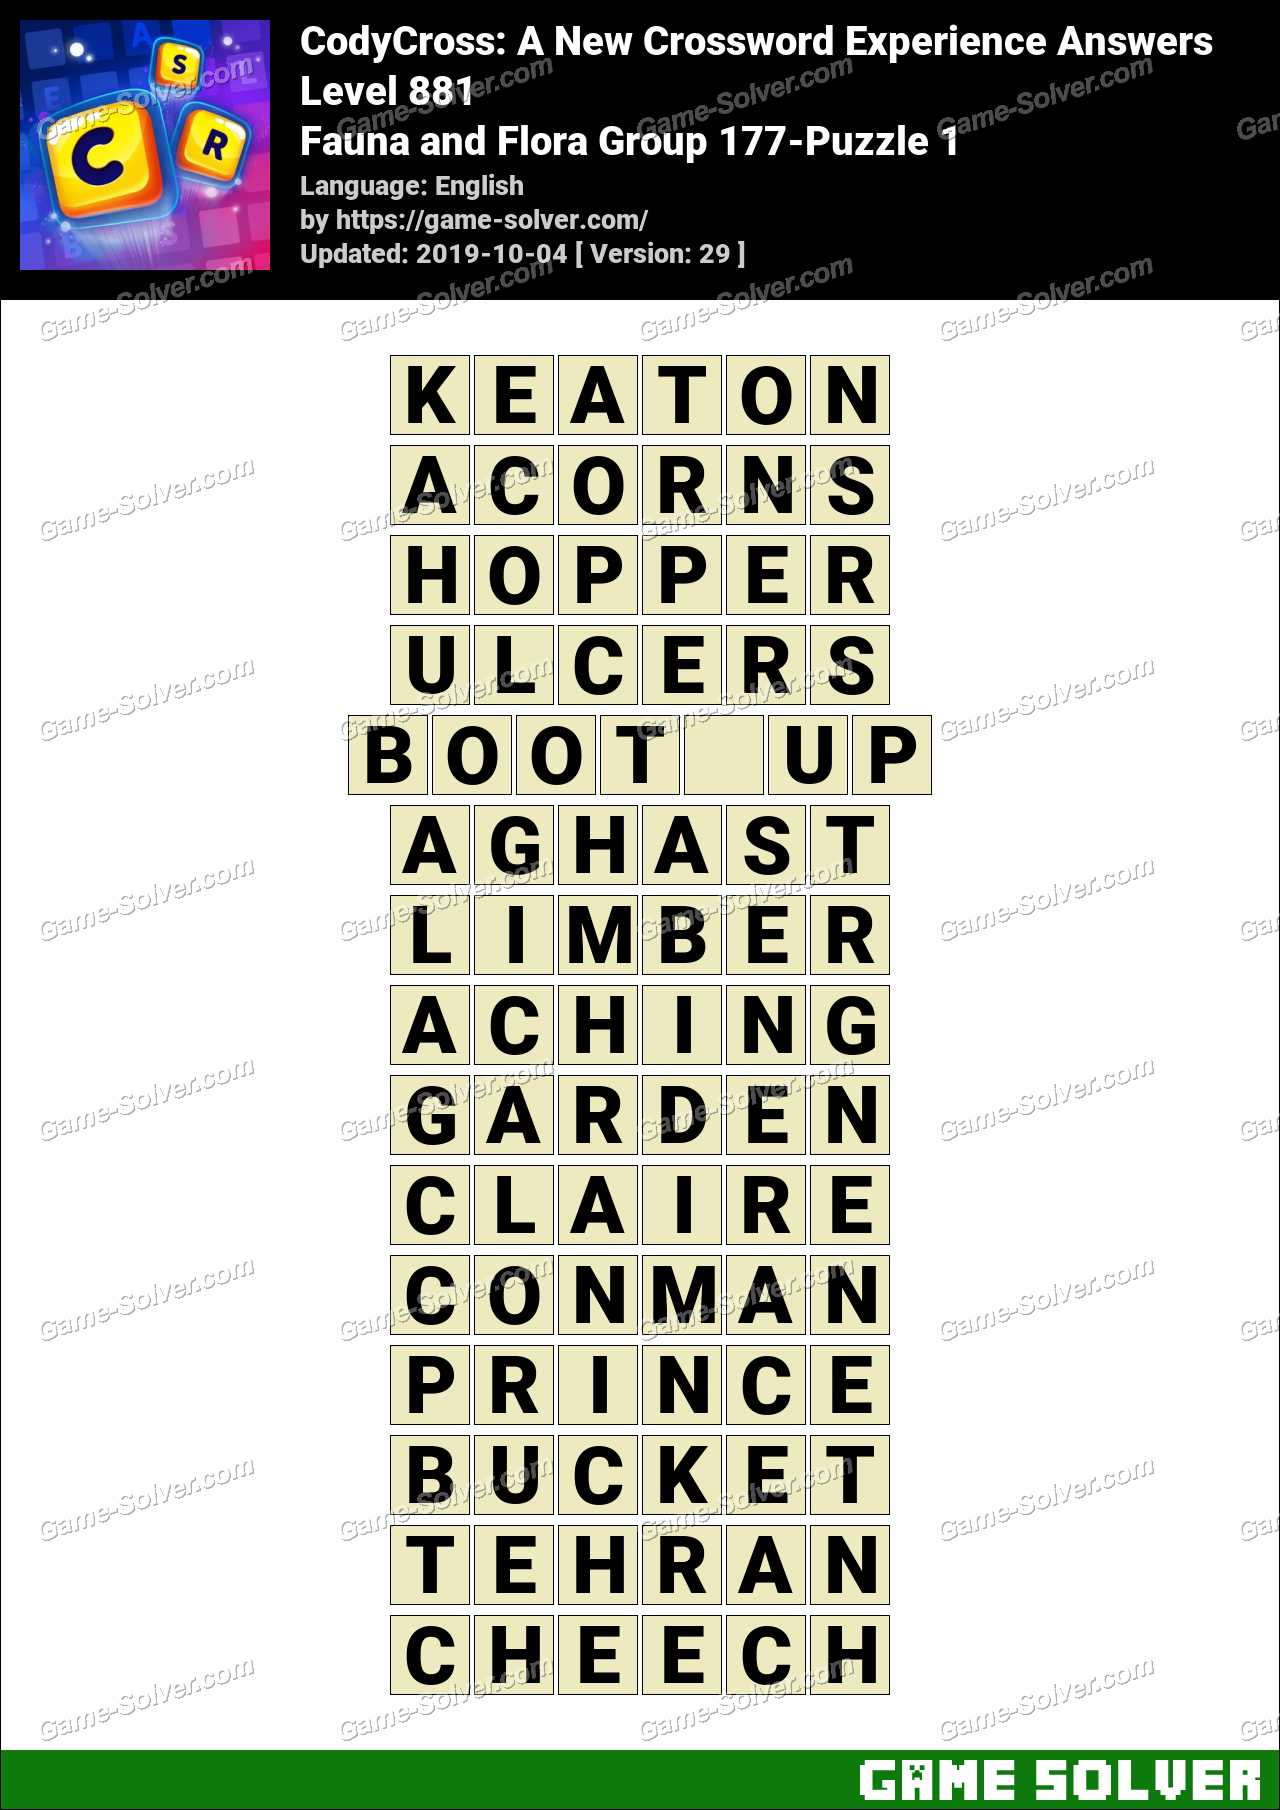 CodyCross Fauna and Flora Group 177-Puzzle 1 Answers